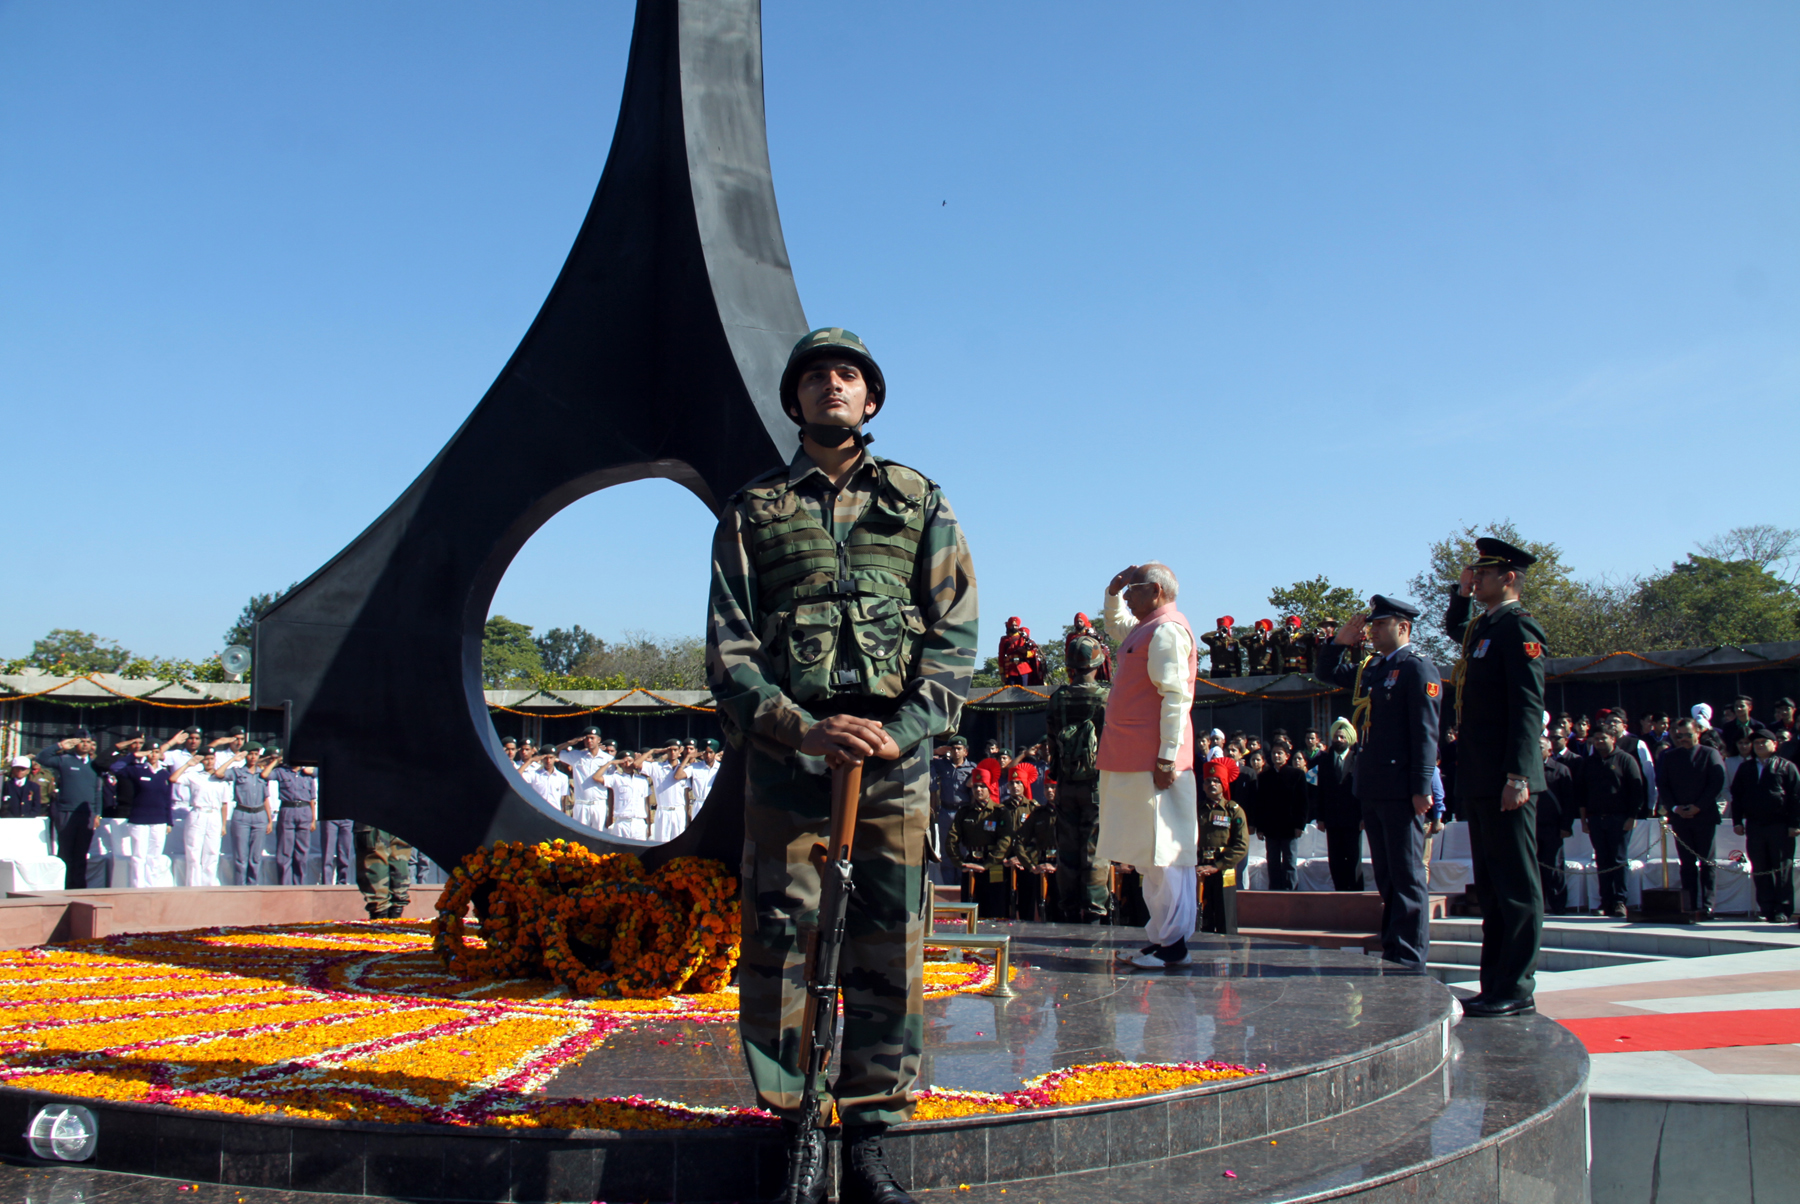 The Governor of Punjab and Haryana & Administrator, Union Territory, Chandigarh, Prof. Kaptan Singh Solanki, saluting at Chandigarh War Memorial to pay homage to the martyrs after placing the wreath at Chandigarh on 30.01.2015.